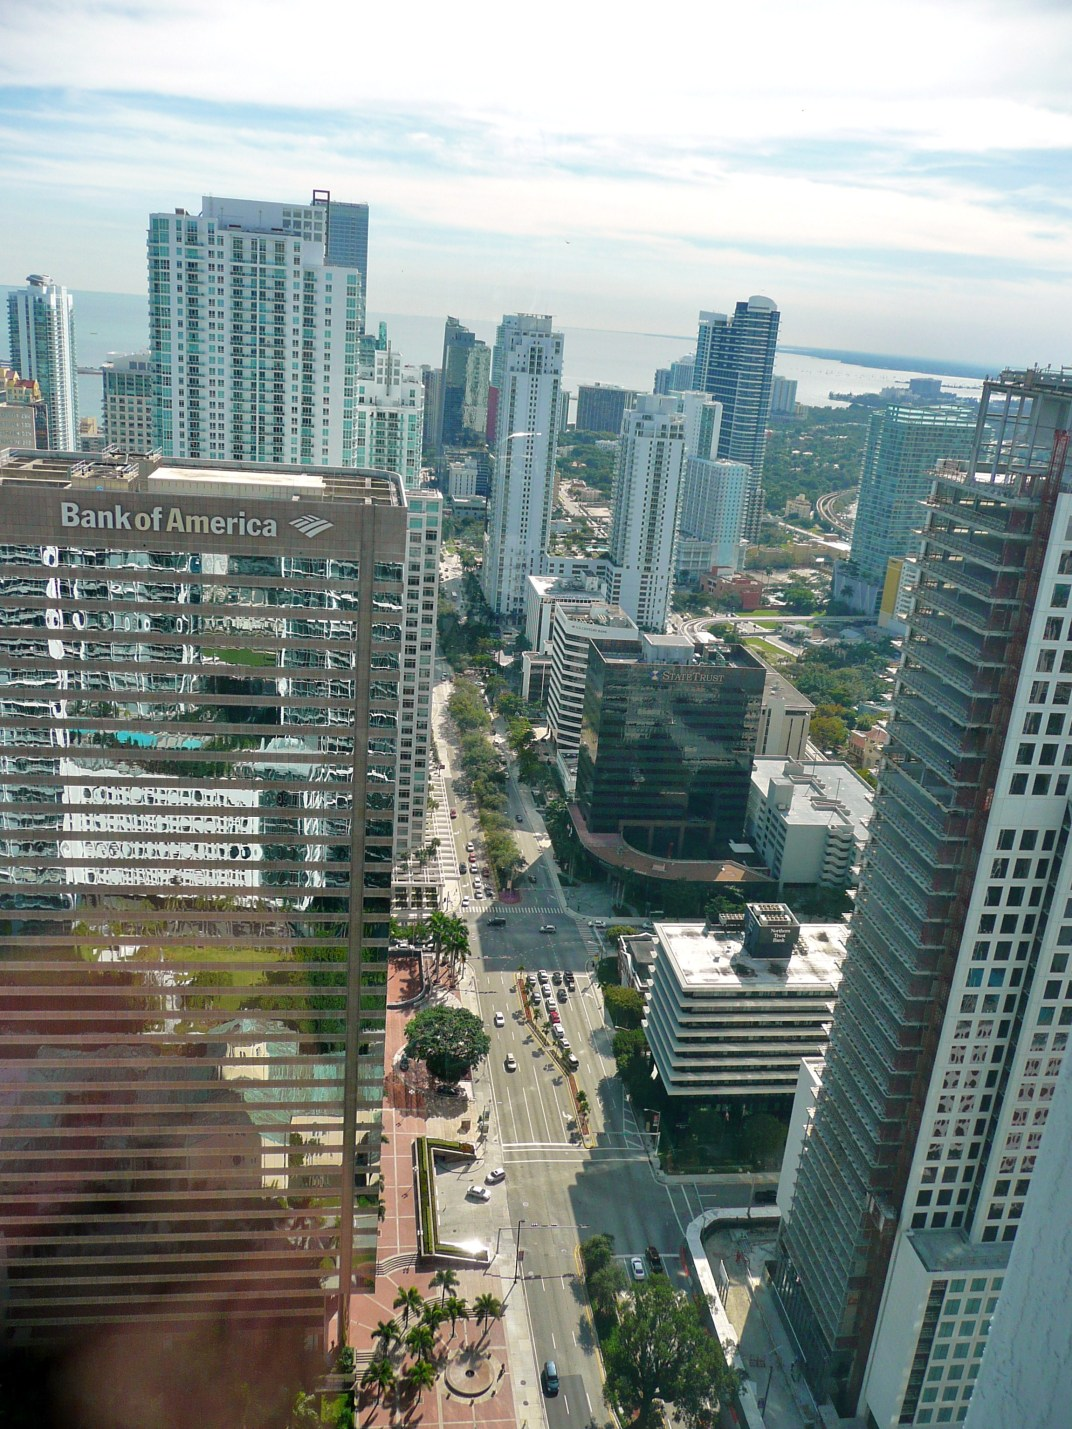 Miami's business district - Brickell Avenue by Avarette